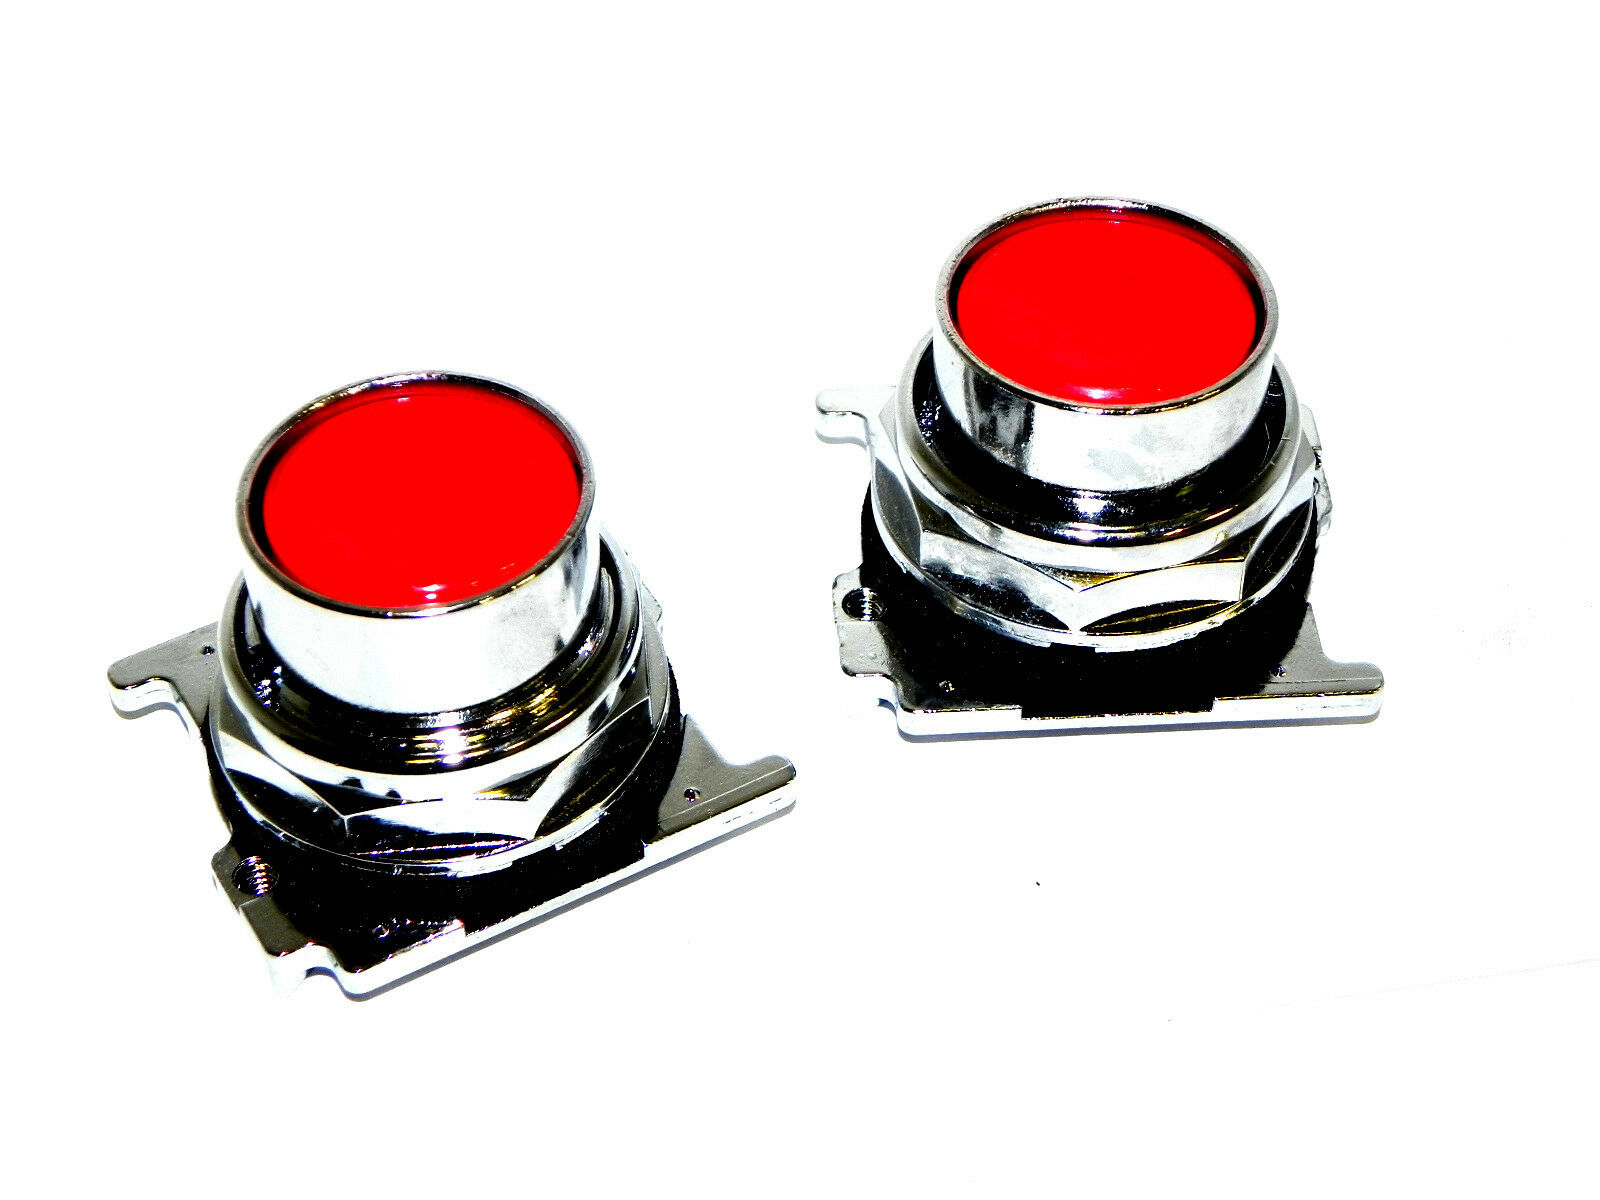 LOT OF 2 NEW CUTLER HAMMER 10250T-102 PUSHBUTTONS 10250T102